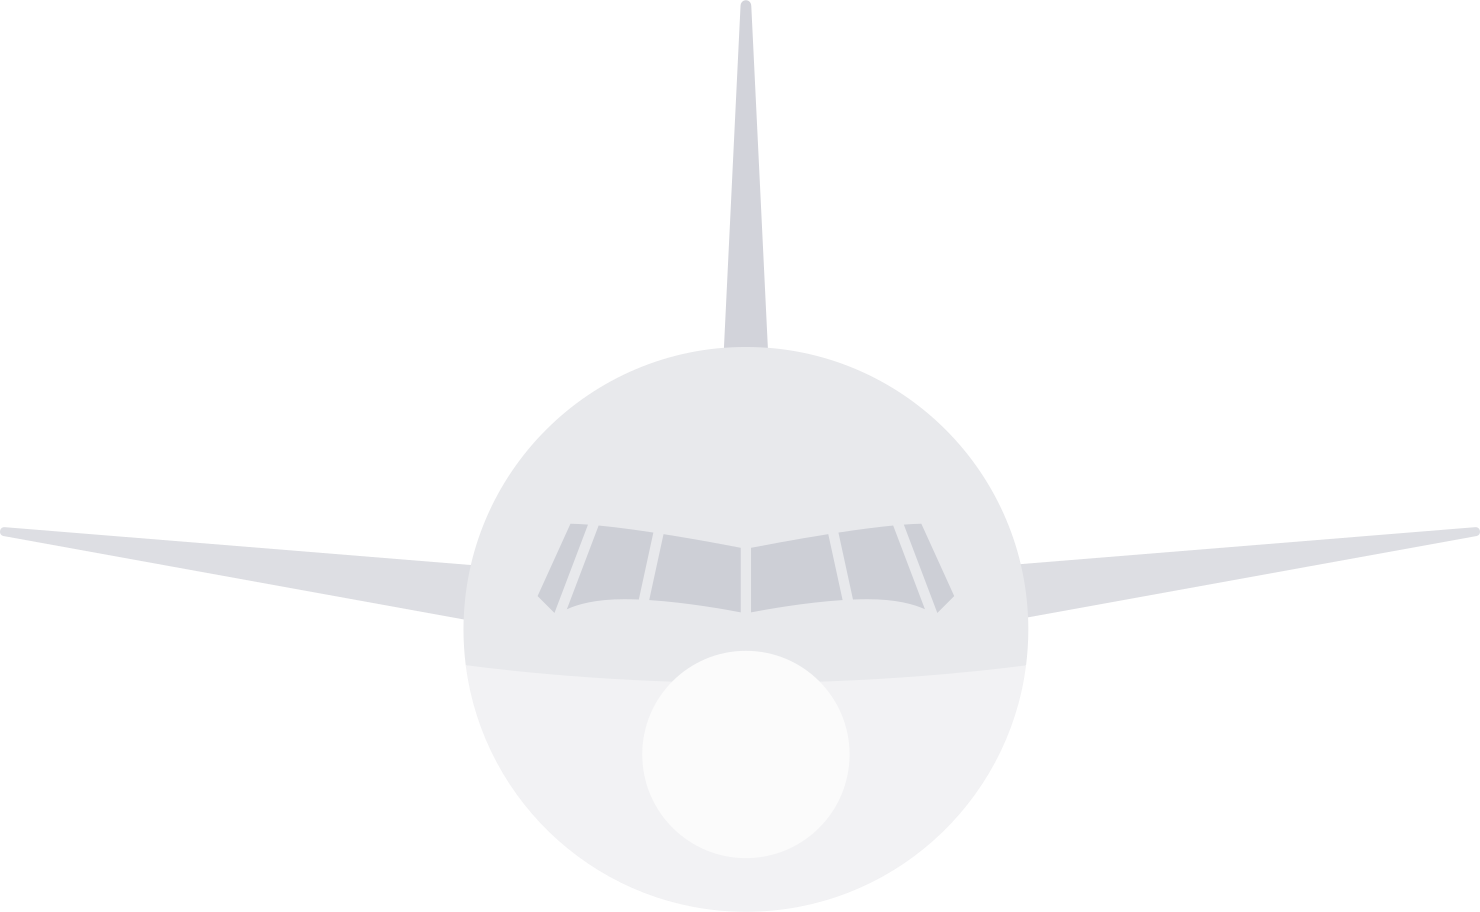 style plane part images in PNG and SVG   Icons8 Illustrations